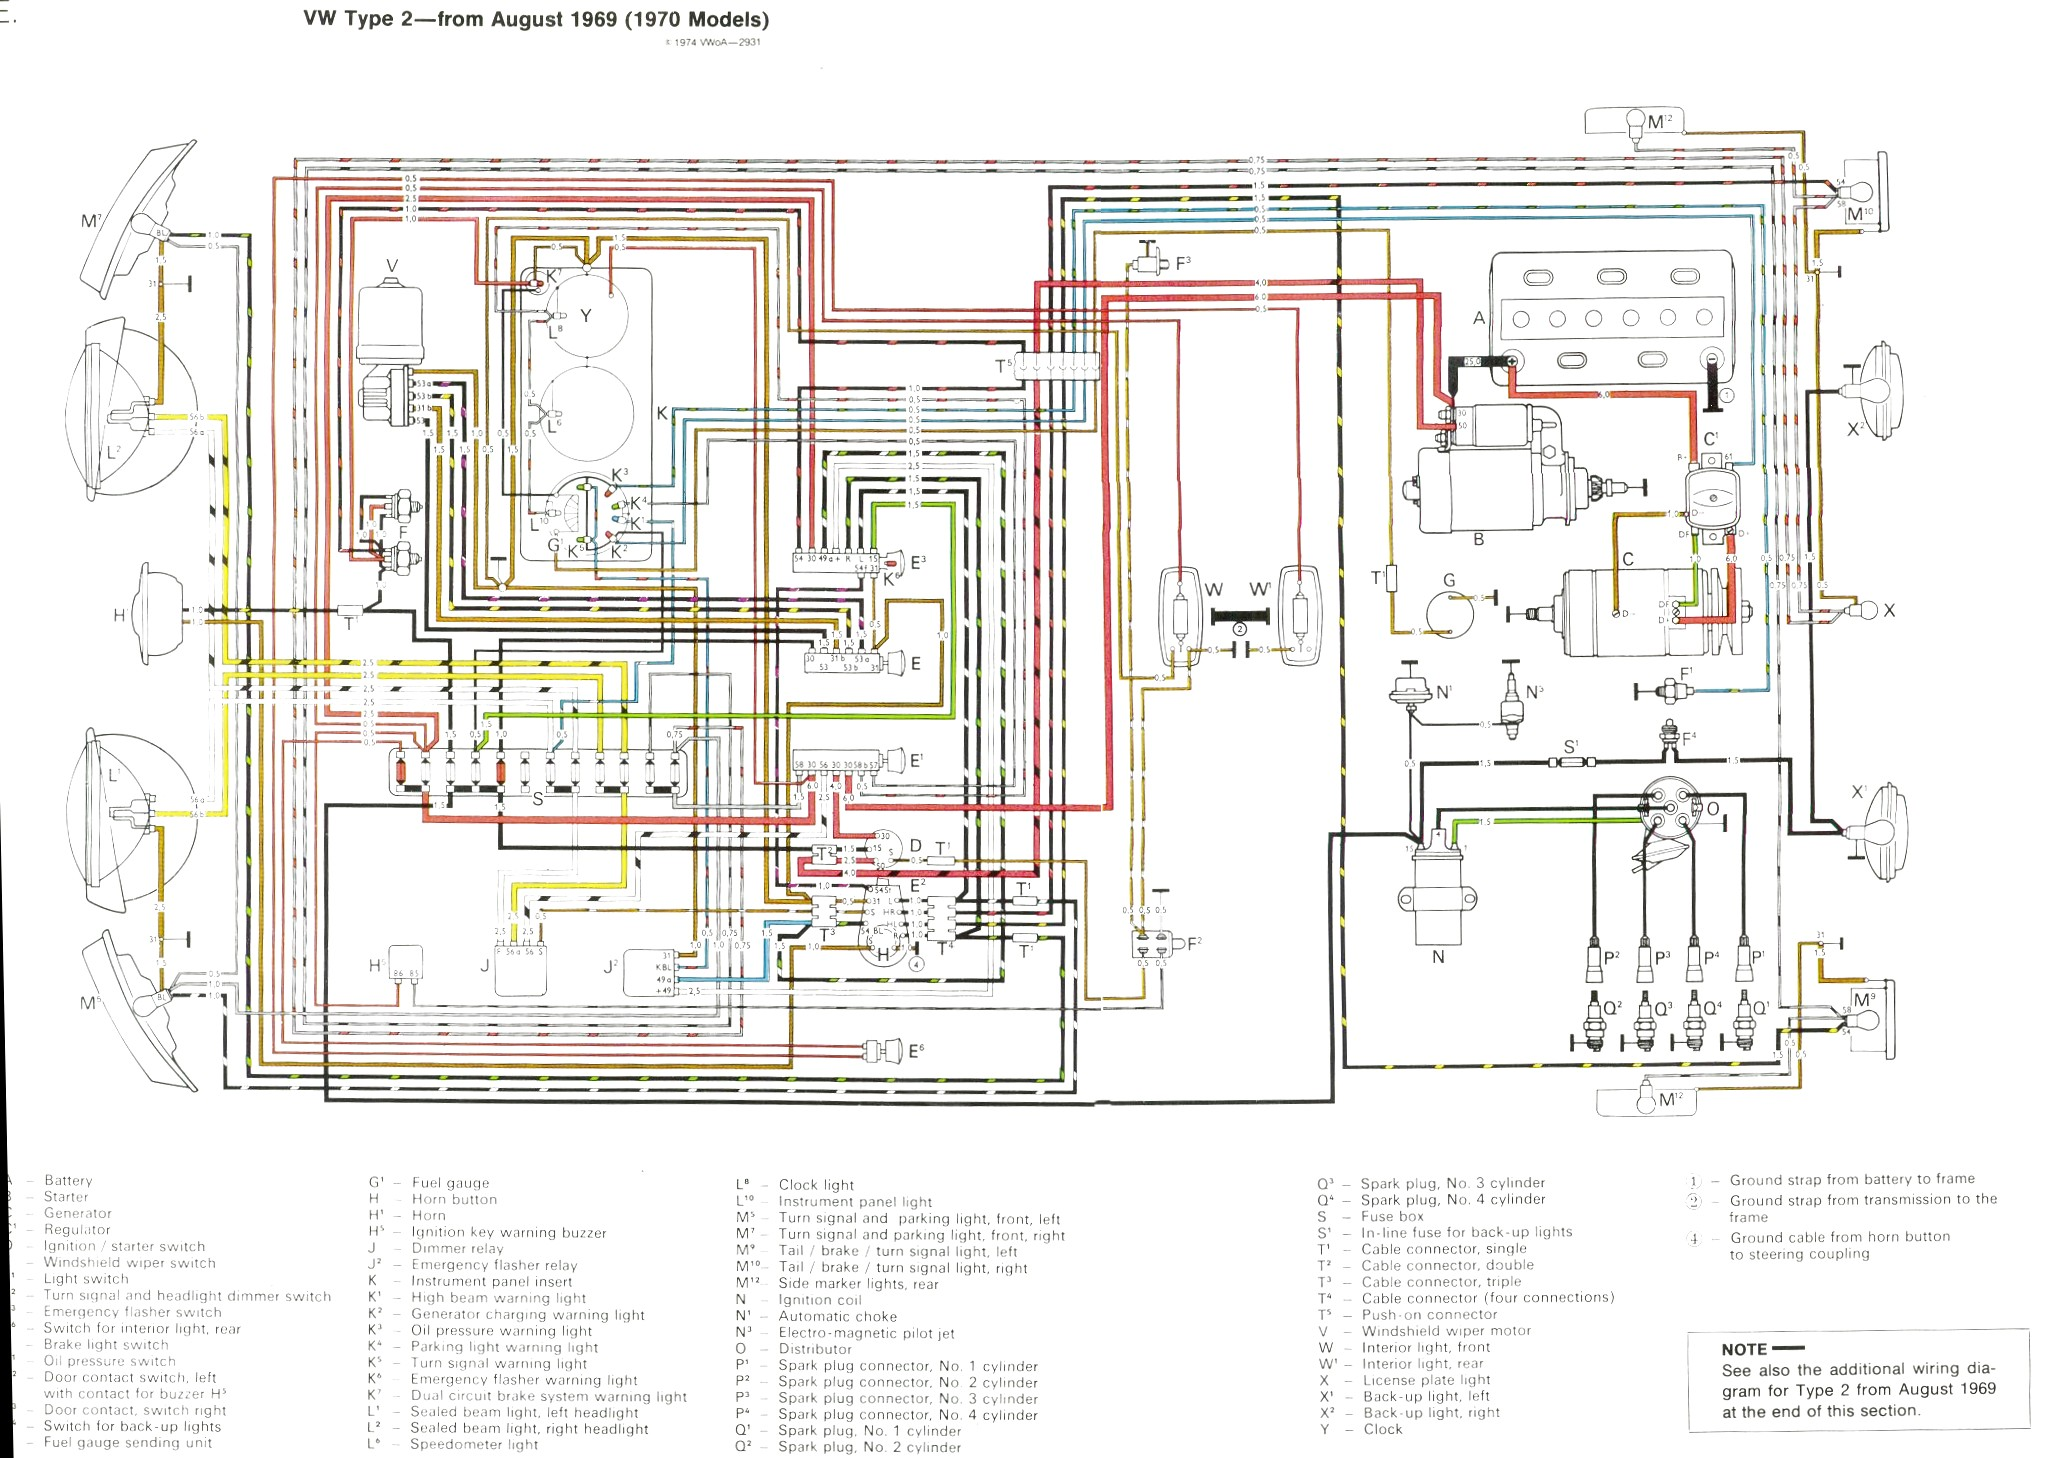 Vw Radio Wiring Diagram 1983 Archive Of Automotive Peugeot 307 Fuse Box Location Hatchback Vintagebus Com Bus And Other Diagrams Rh